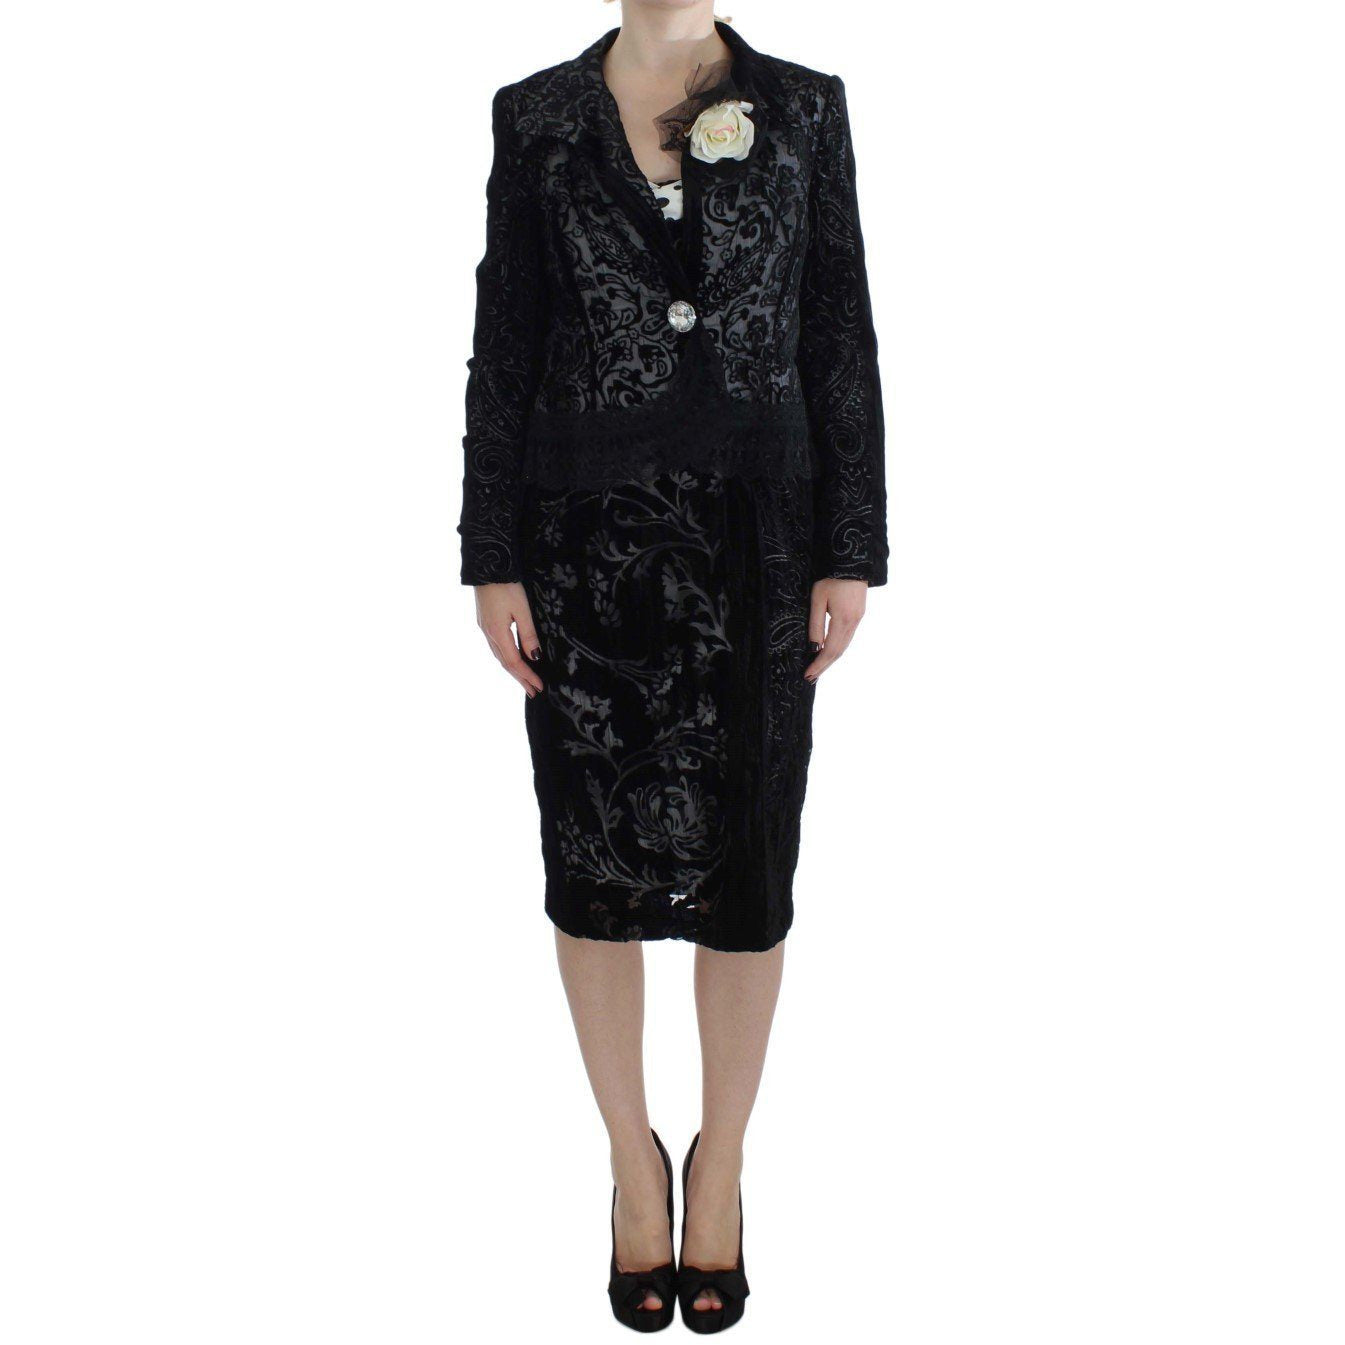 Black Floral Sheath Dress & Blazer Set BENCIVENGA